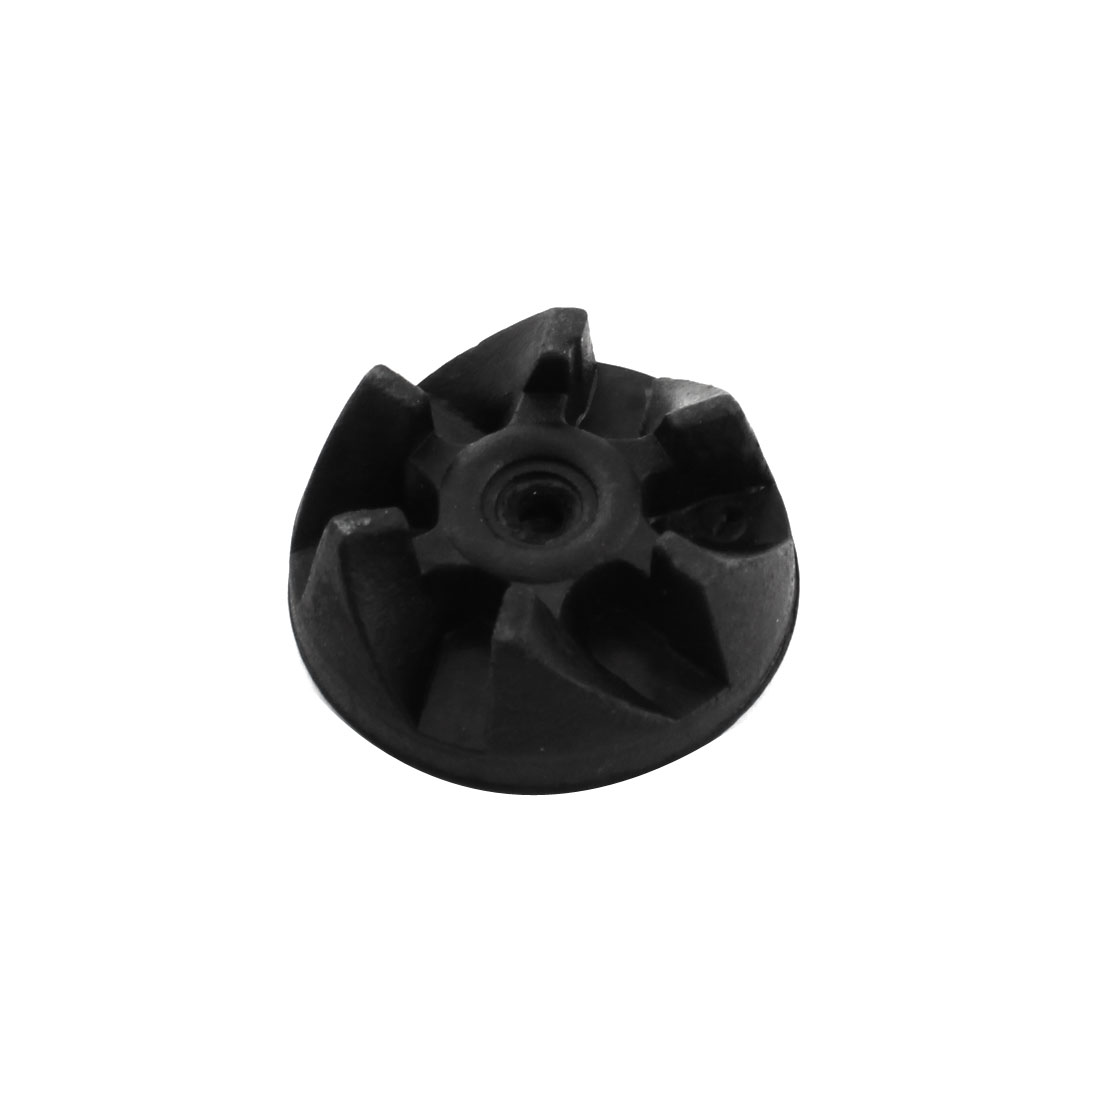 Electric Blender 6-Tooth Black Rubber Coupler Drive Clutch Adapter 37mm Dia 5mm Thread